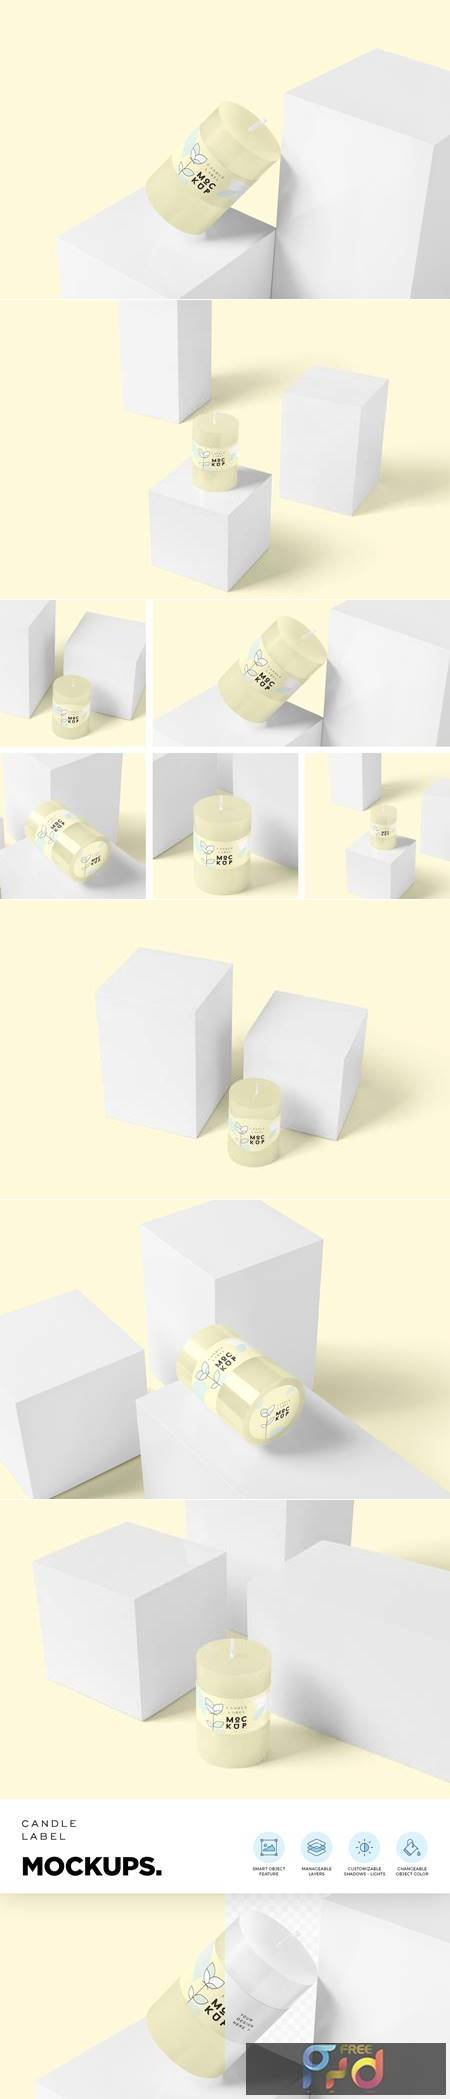 Small Round Candle Label Mockups 4646702 1